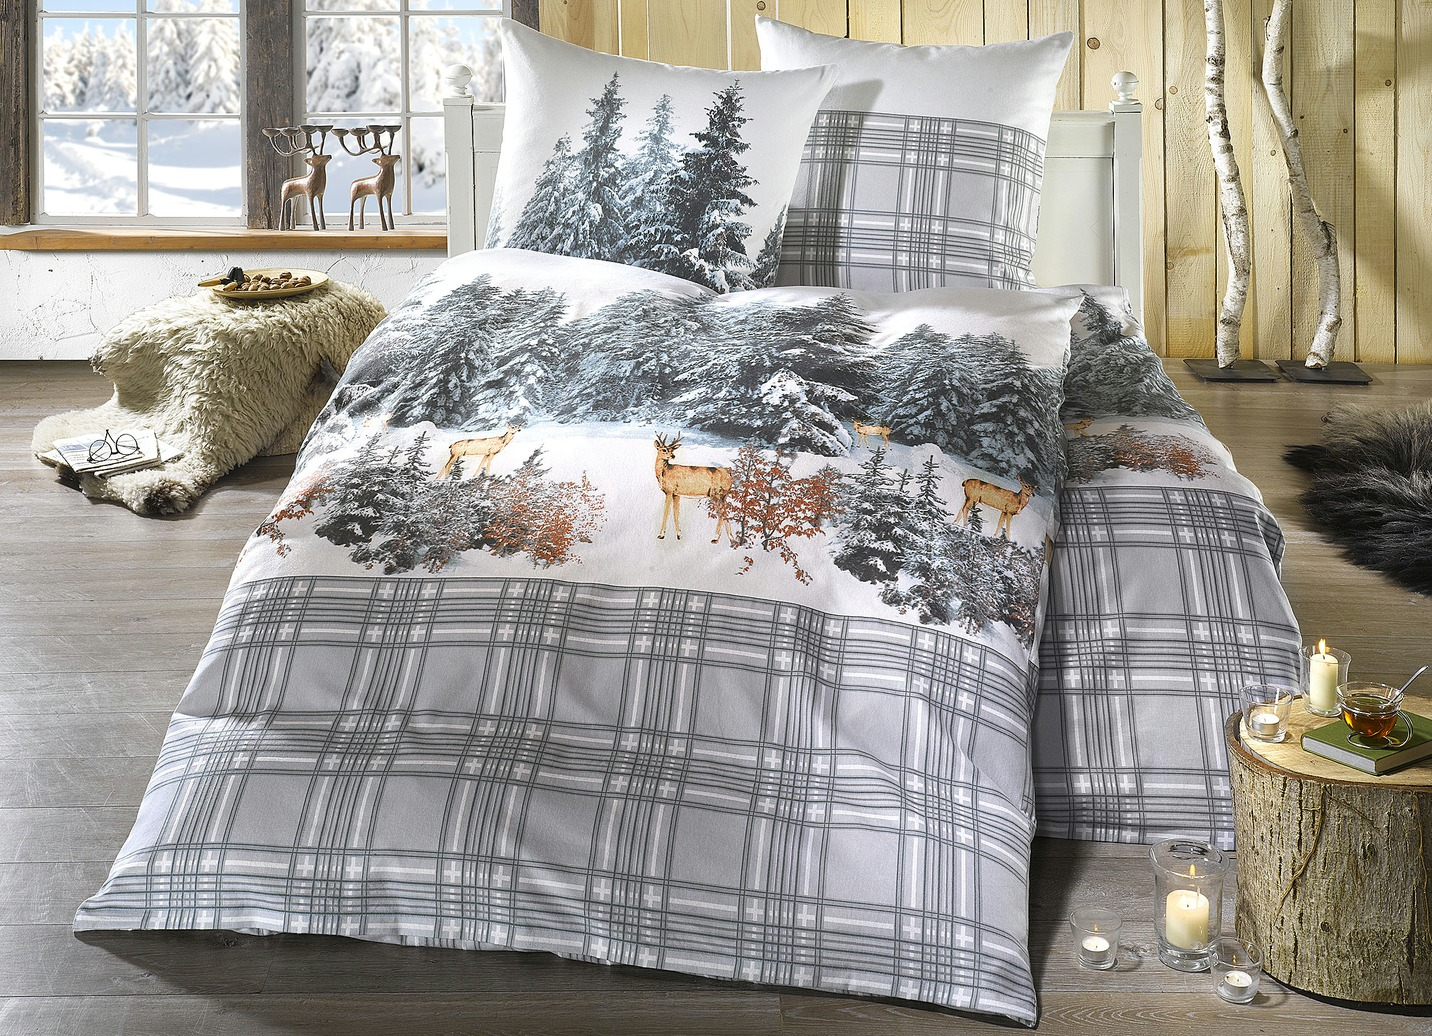 irisette bettw sche garnitur winterlandschaft bettw sche brigitte hachenburg. Black Bedroom Furniture Sets. Home Design Ideas